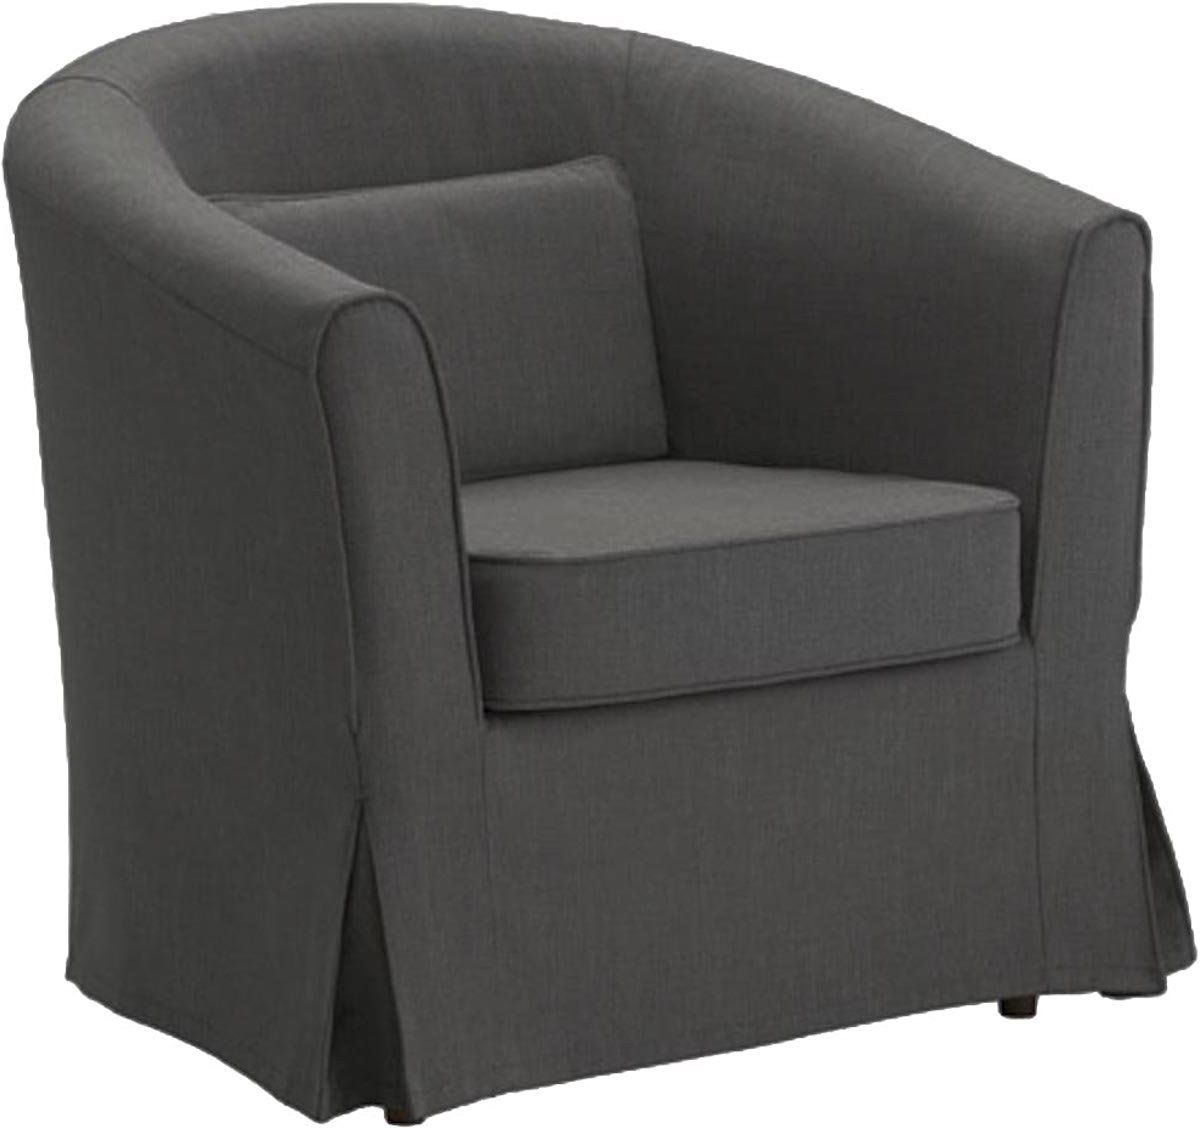 Favorite Ikea Sofa Chairs Intended For Cheap Sofa Chair Ikea, Find Sofa Chair Ikea Deals On Line At Alibaba (View 13 of 20)